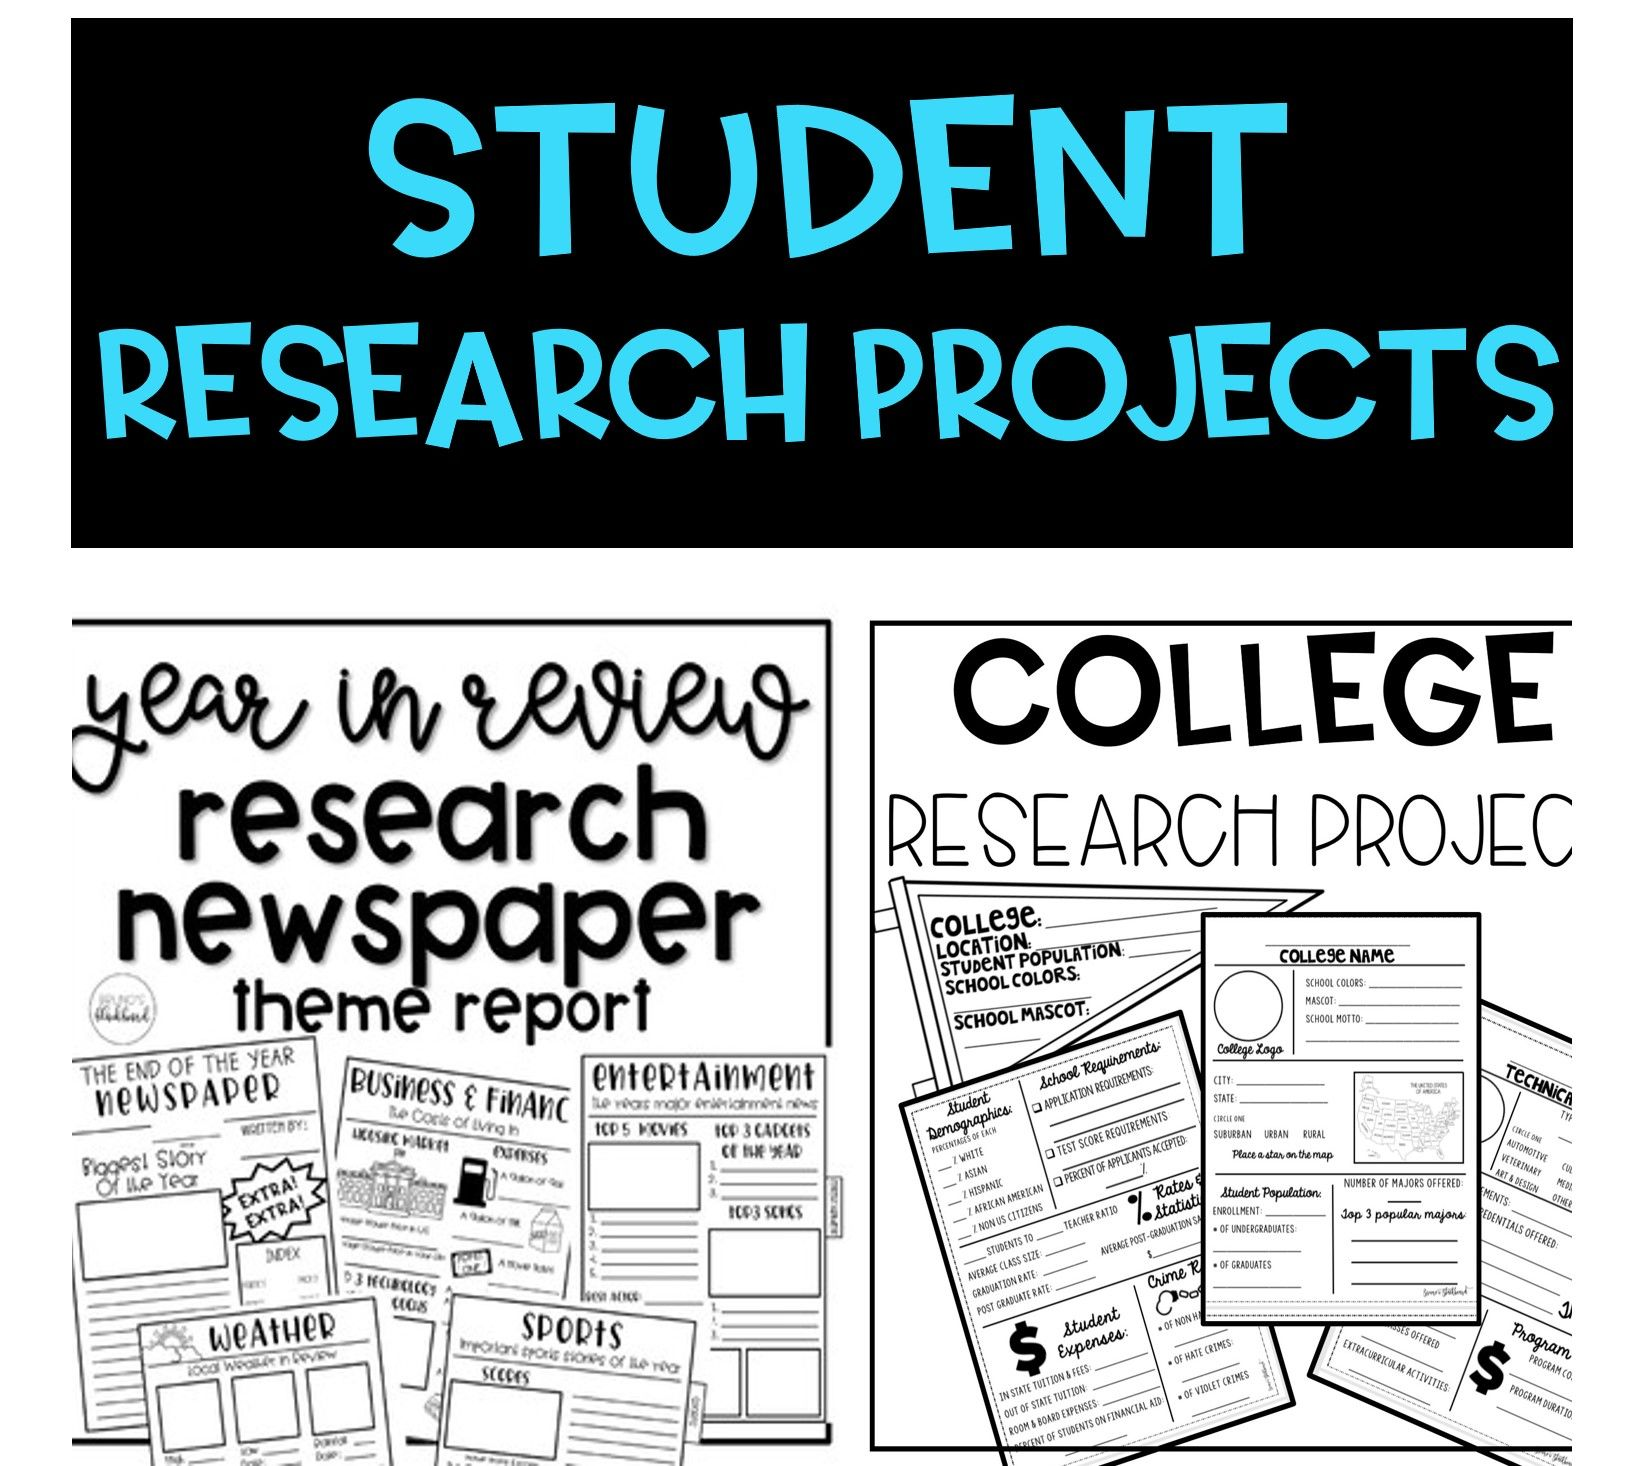 Student Research Projects